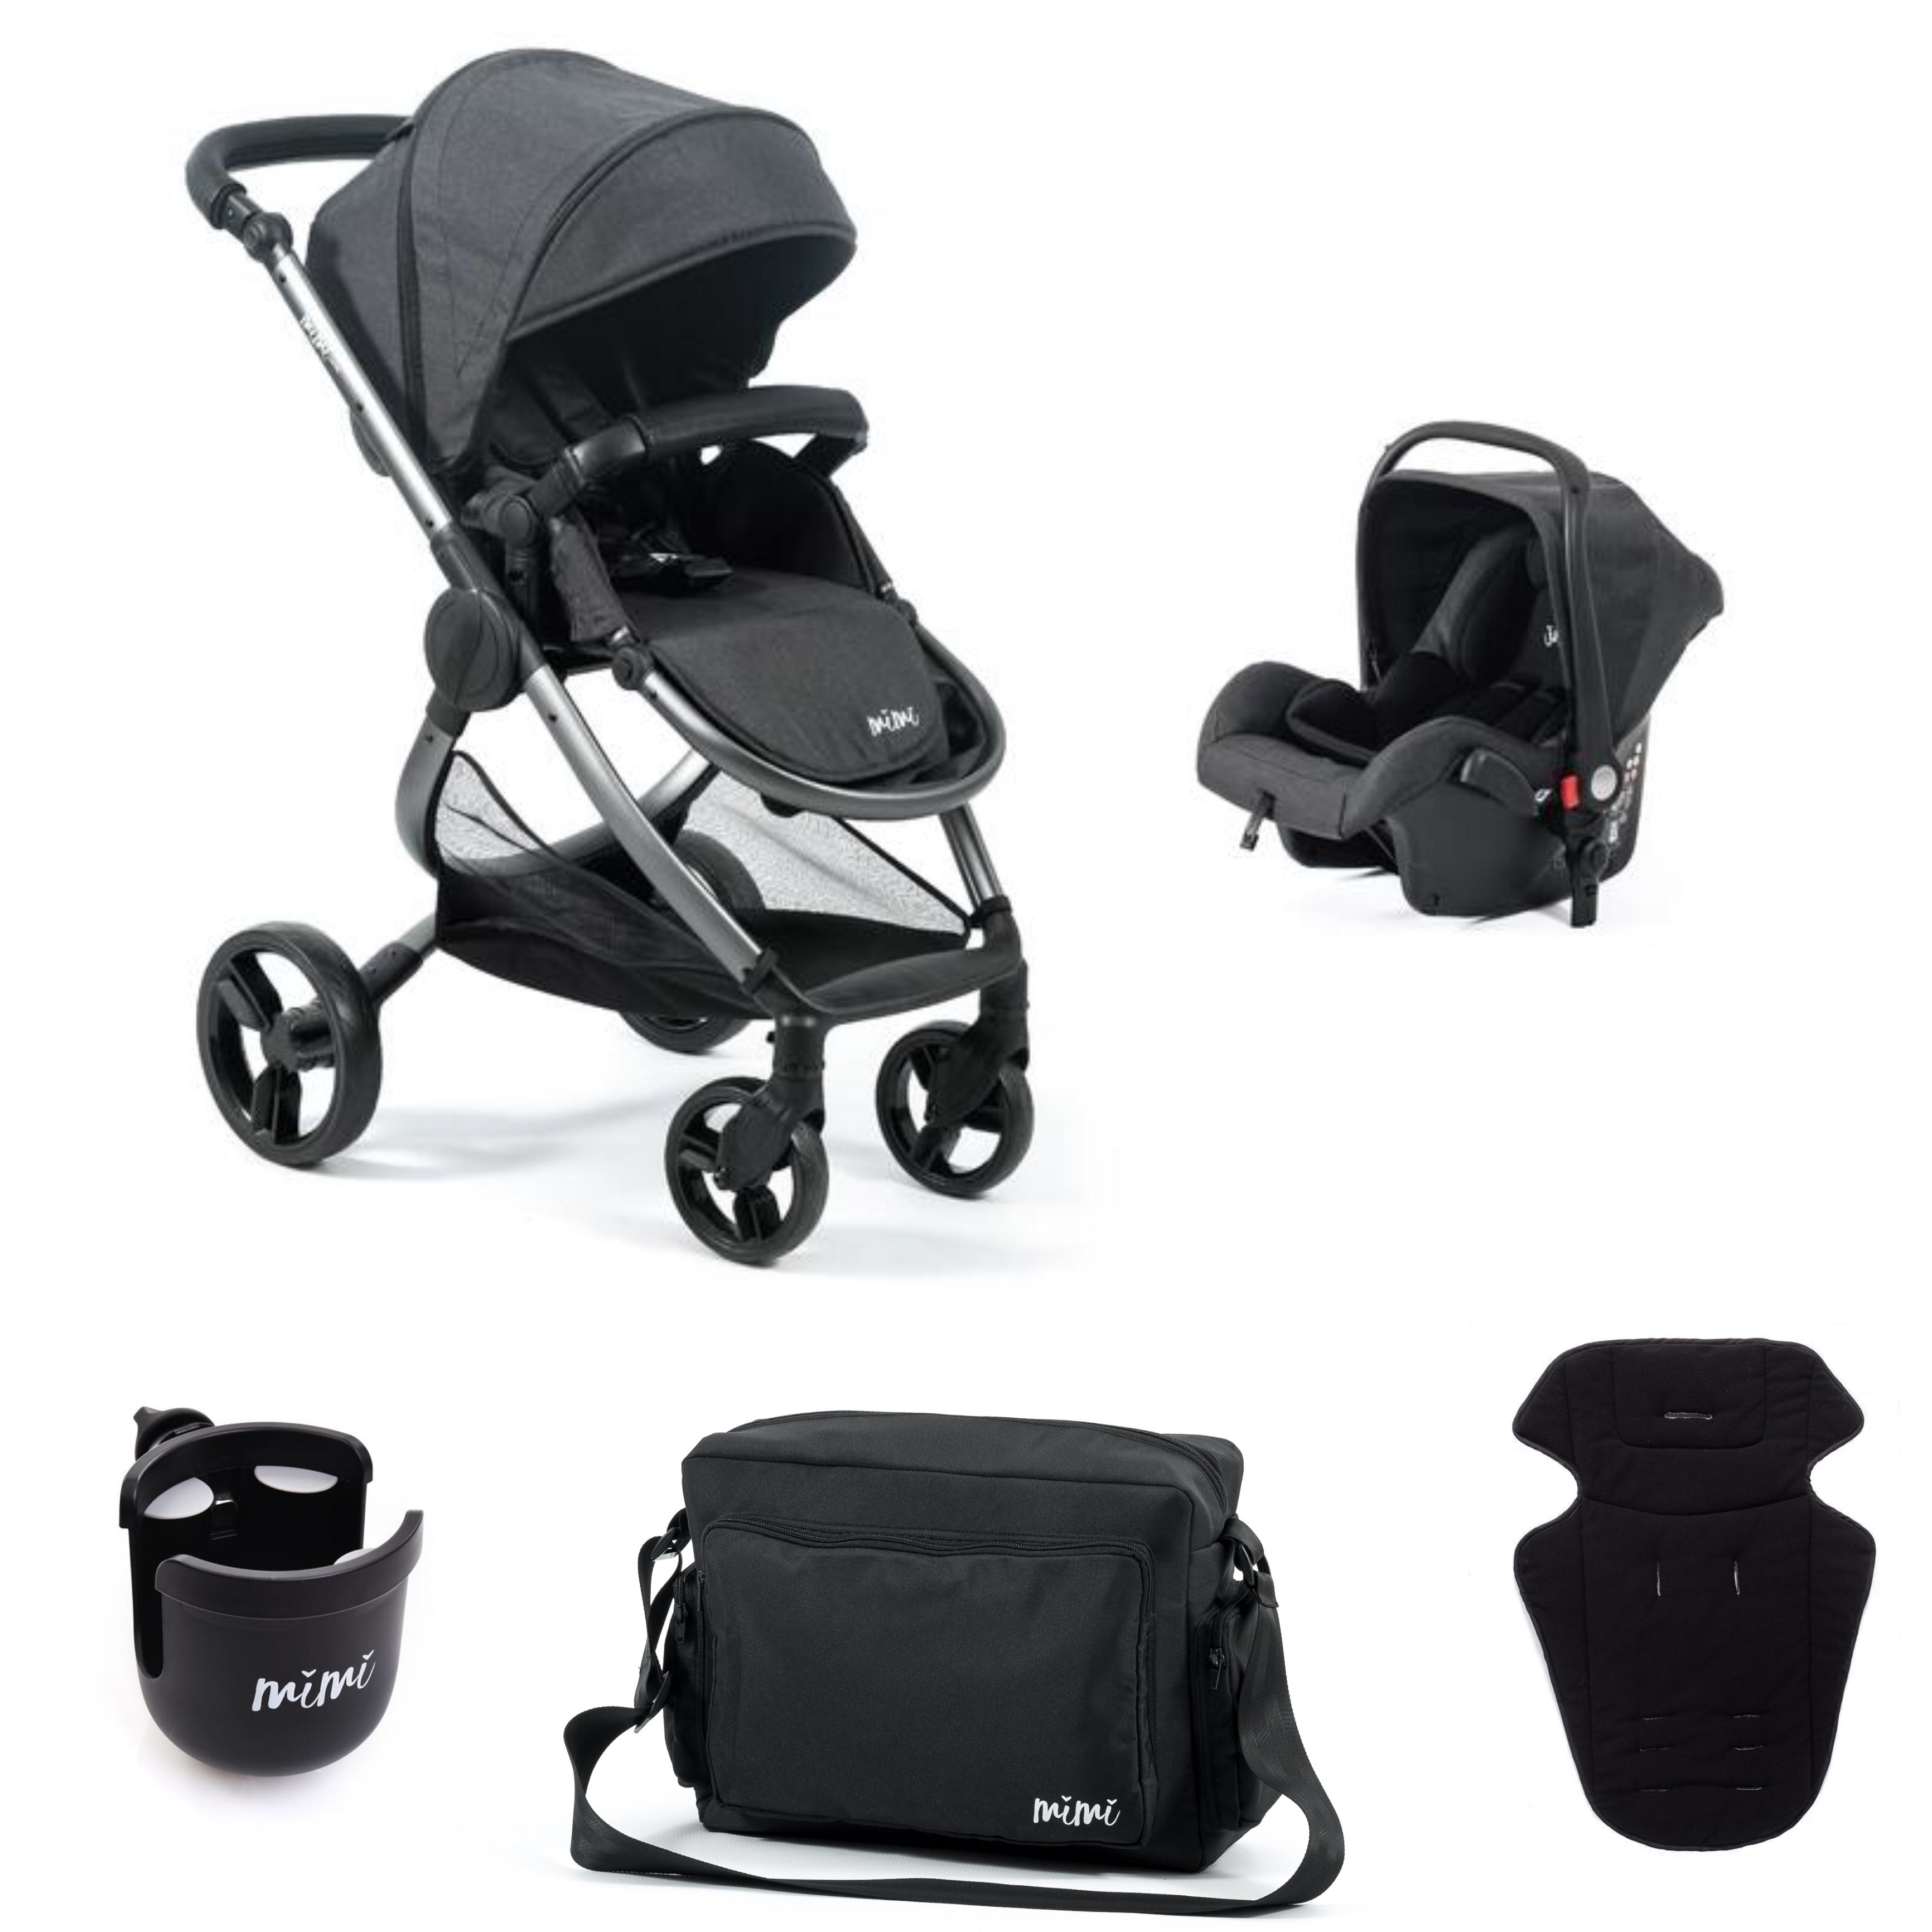 Mimi Luxe 2 in 1 Travel System | BLACK FRIDAY DELUXE DEAL